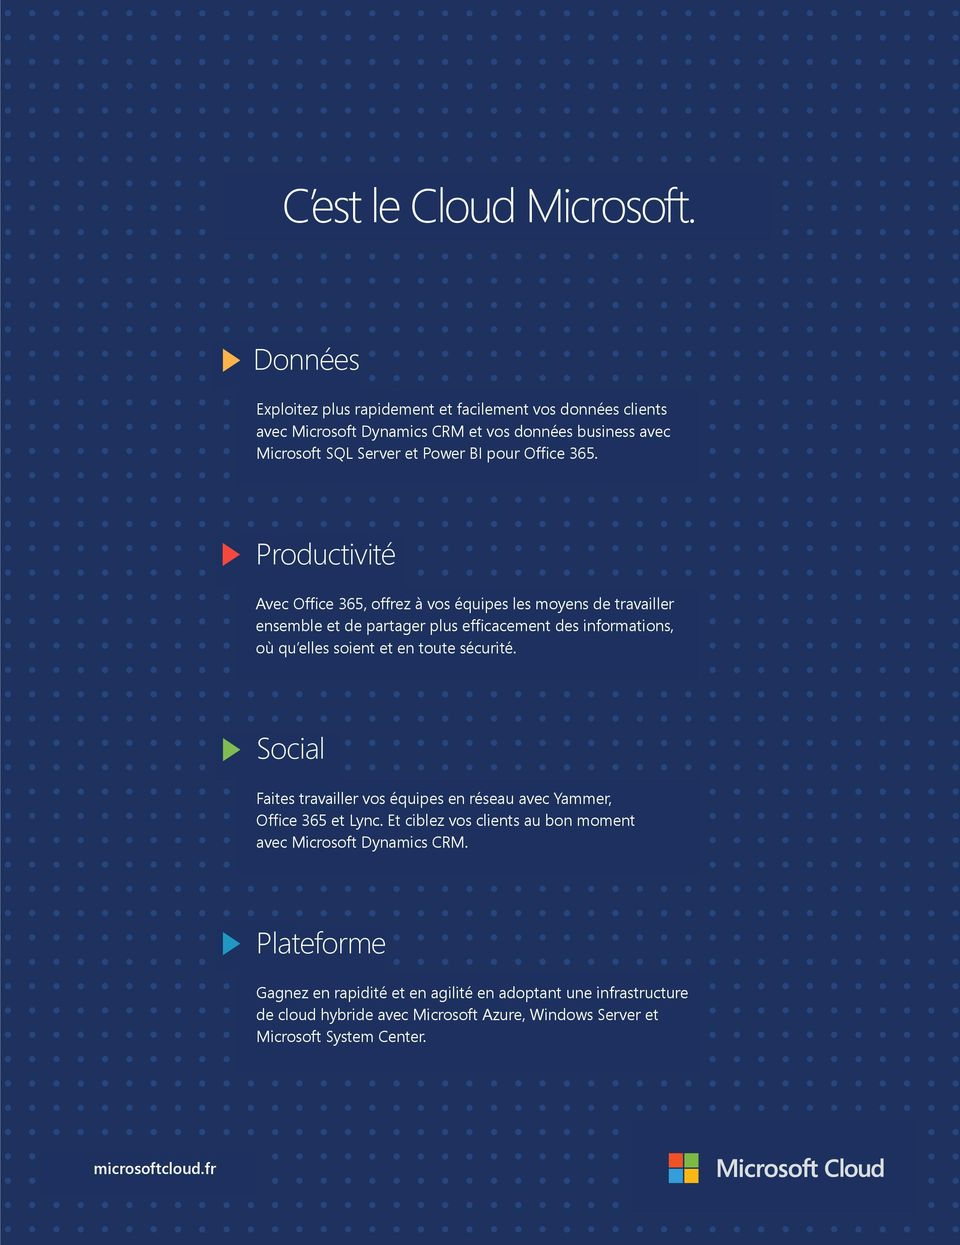 CRM et CRM, vos and données business business insights avec with Microsoft SQL Server and et Power BI BI pour for Office Office 365.